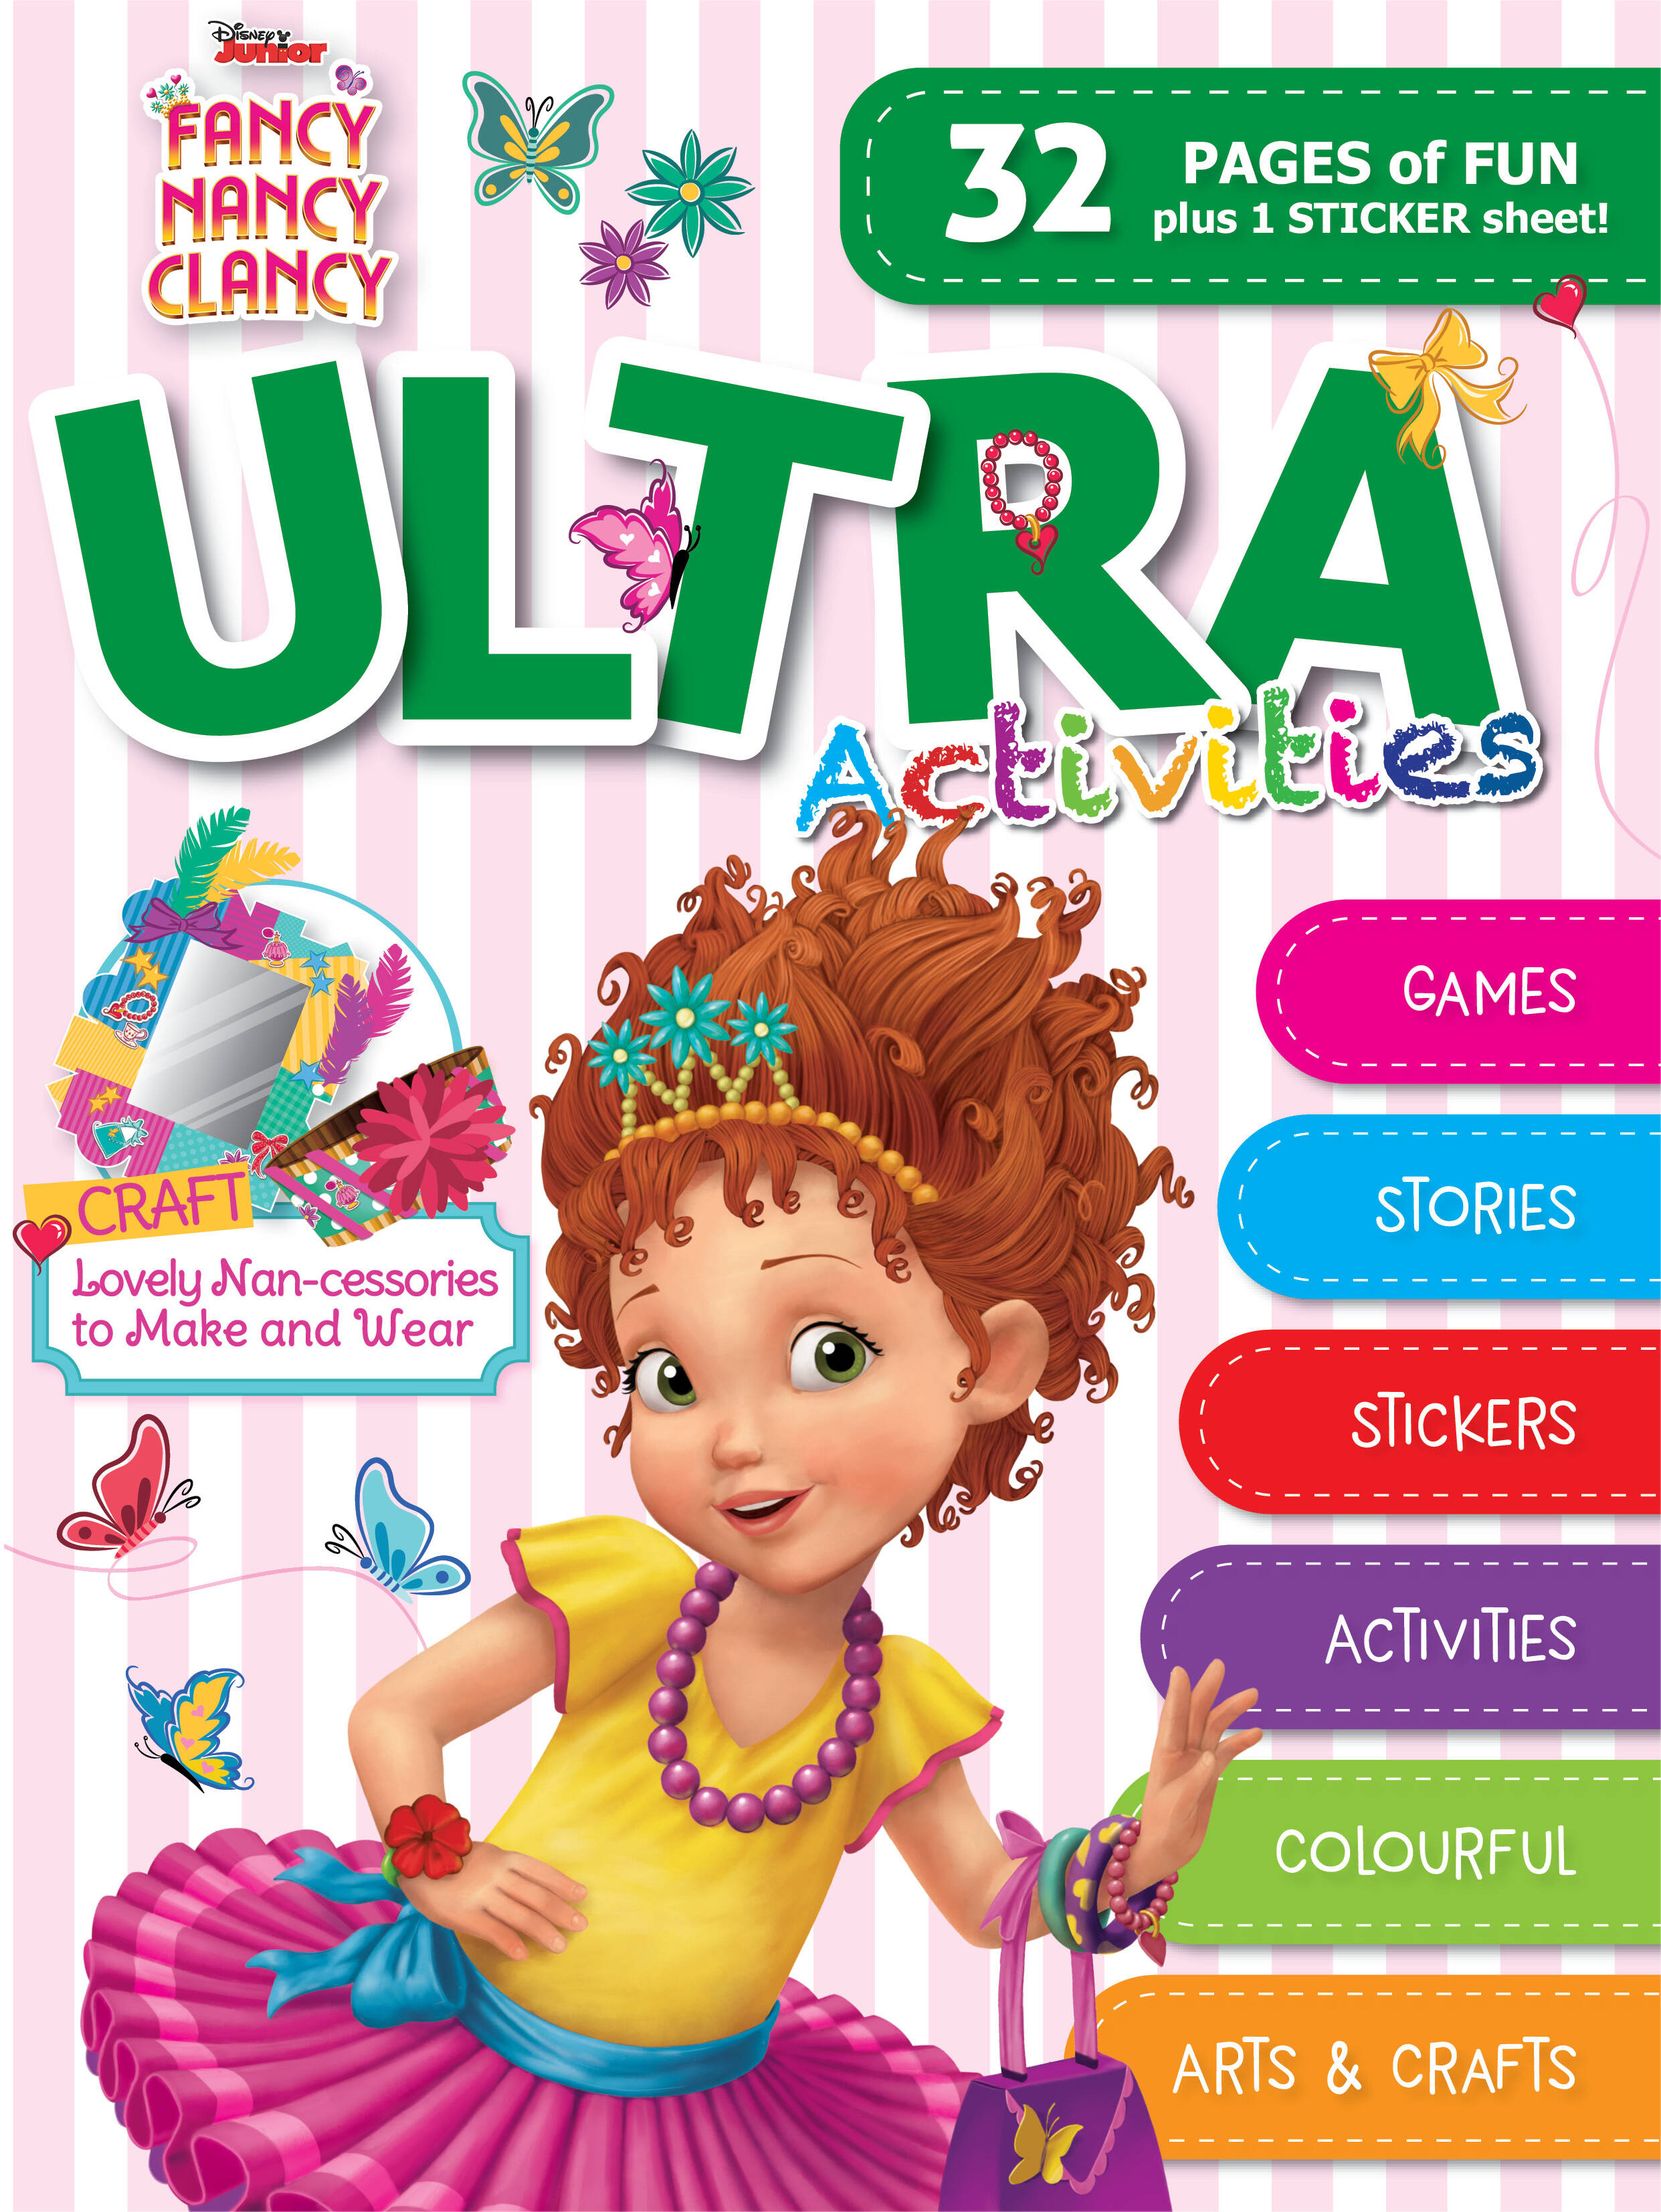 Disney Fancy Nancy - Ultra Activities